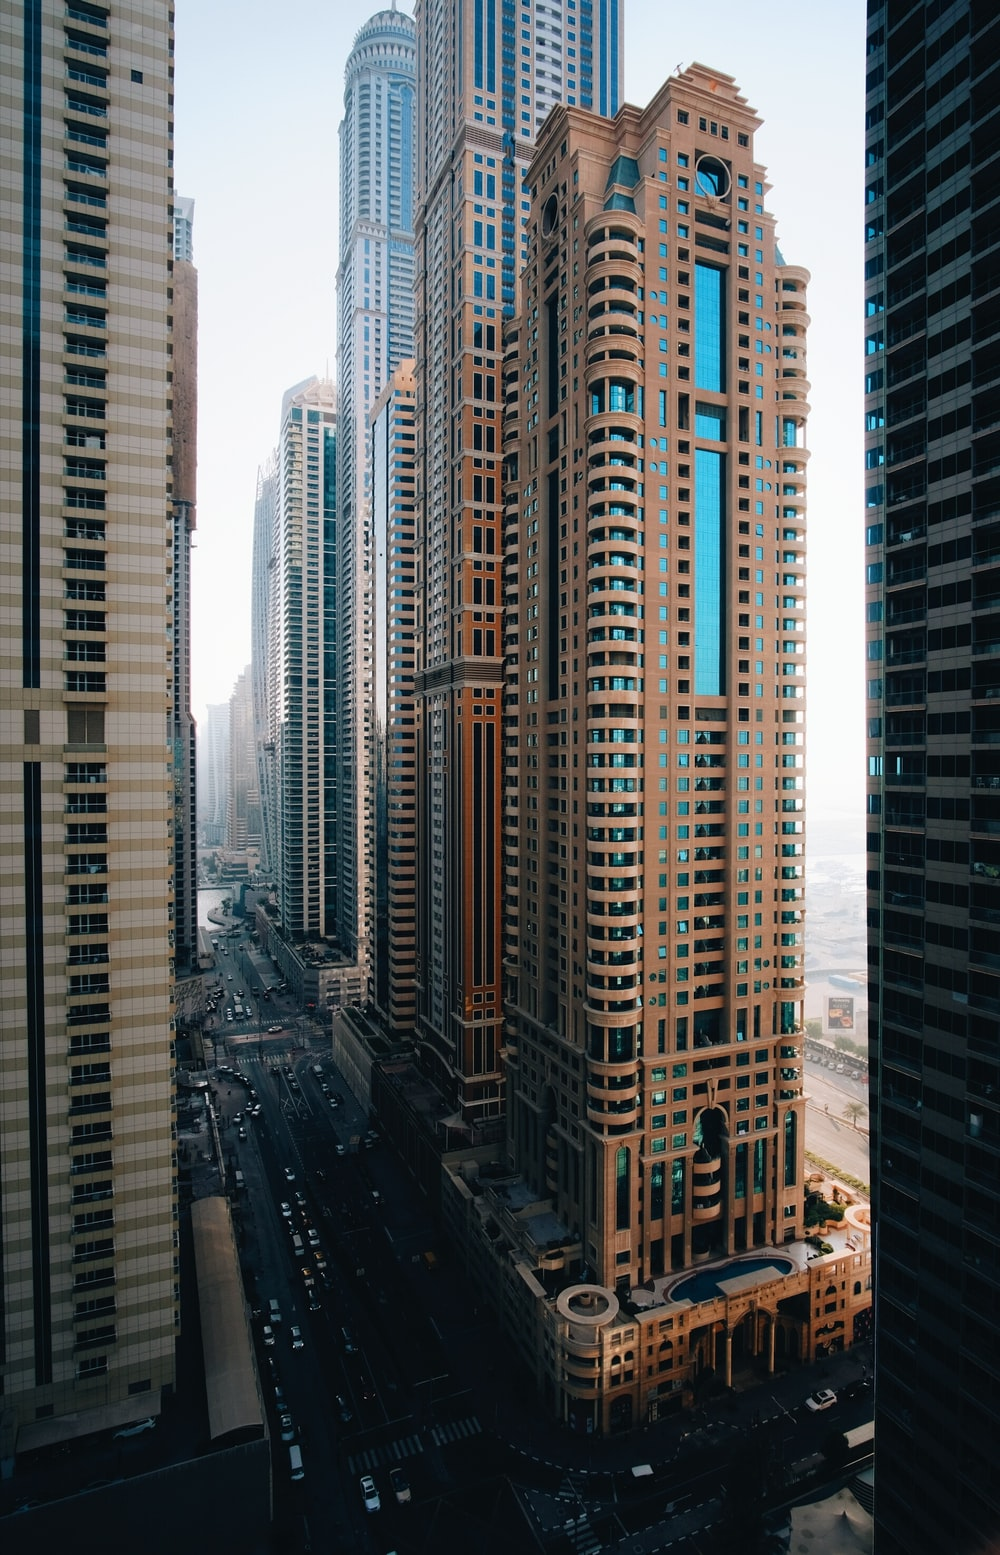 architectural photography of city buildings